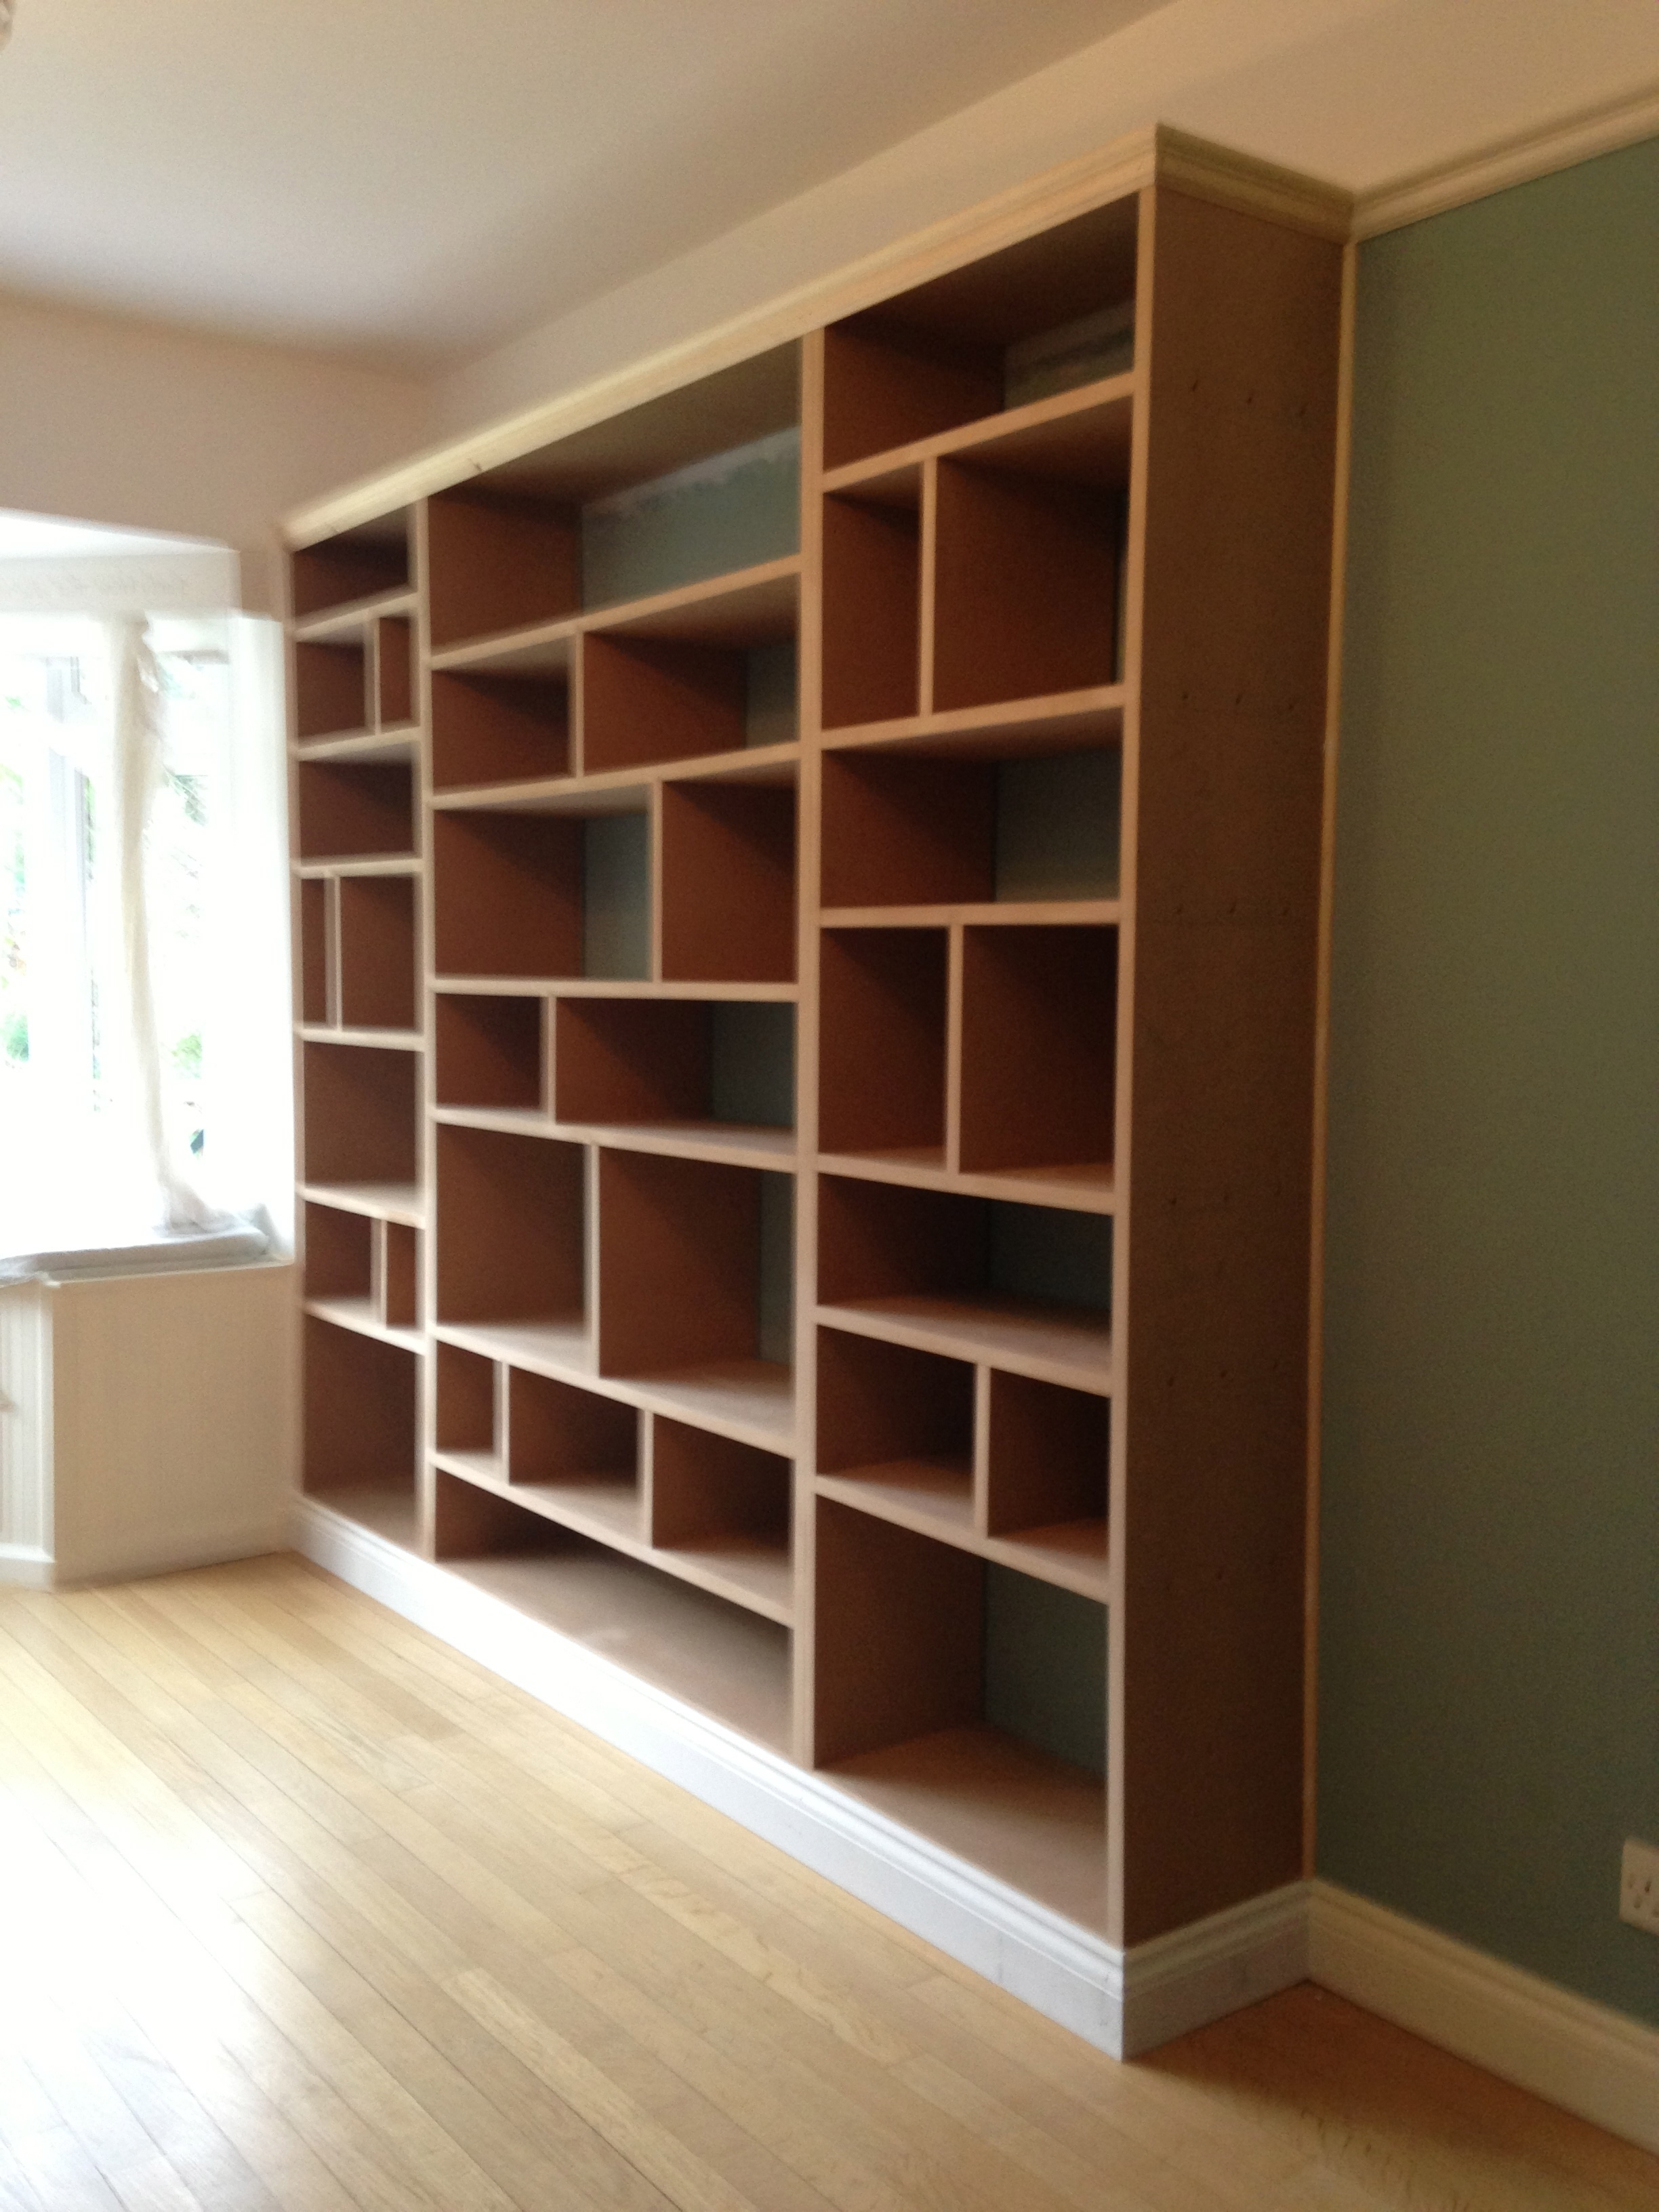 Fitted Shelving Systems Pertaining To Most Popular Phenomenal Built In Shelving Units Photo Ideas Build Ikea Wall (View 6 of 15)